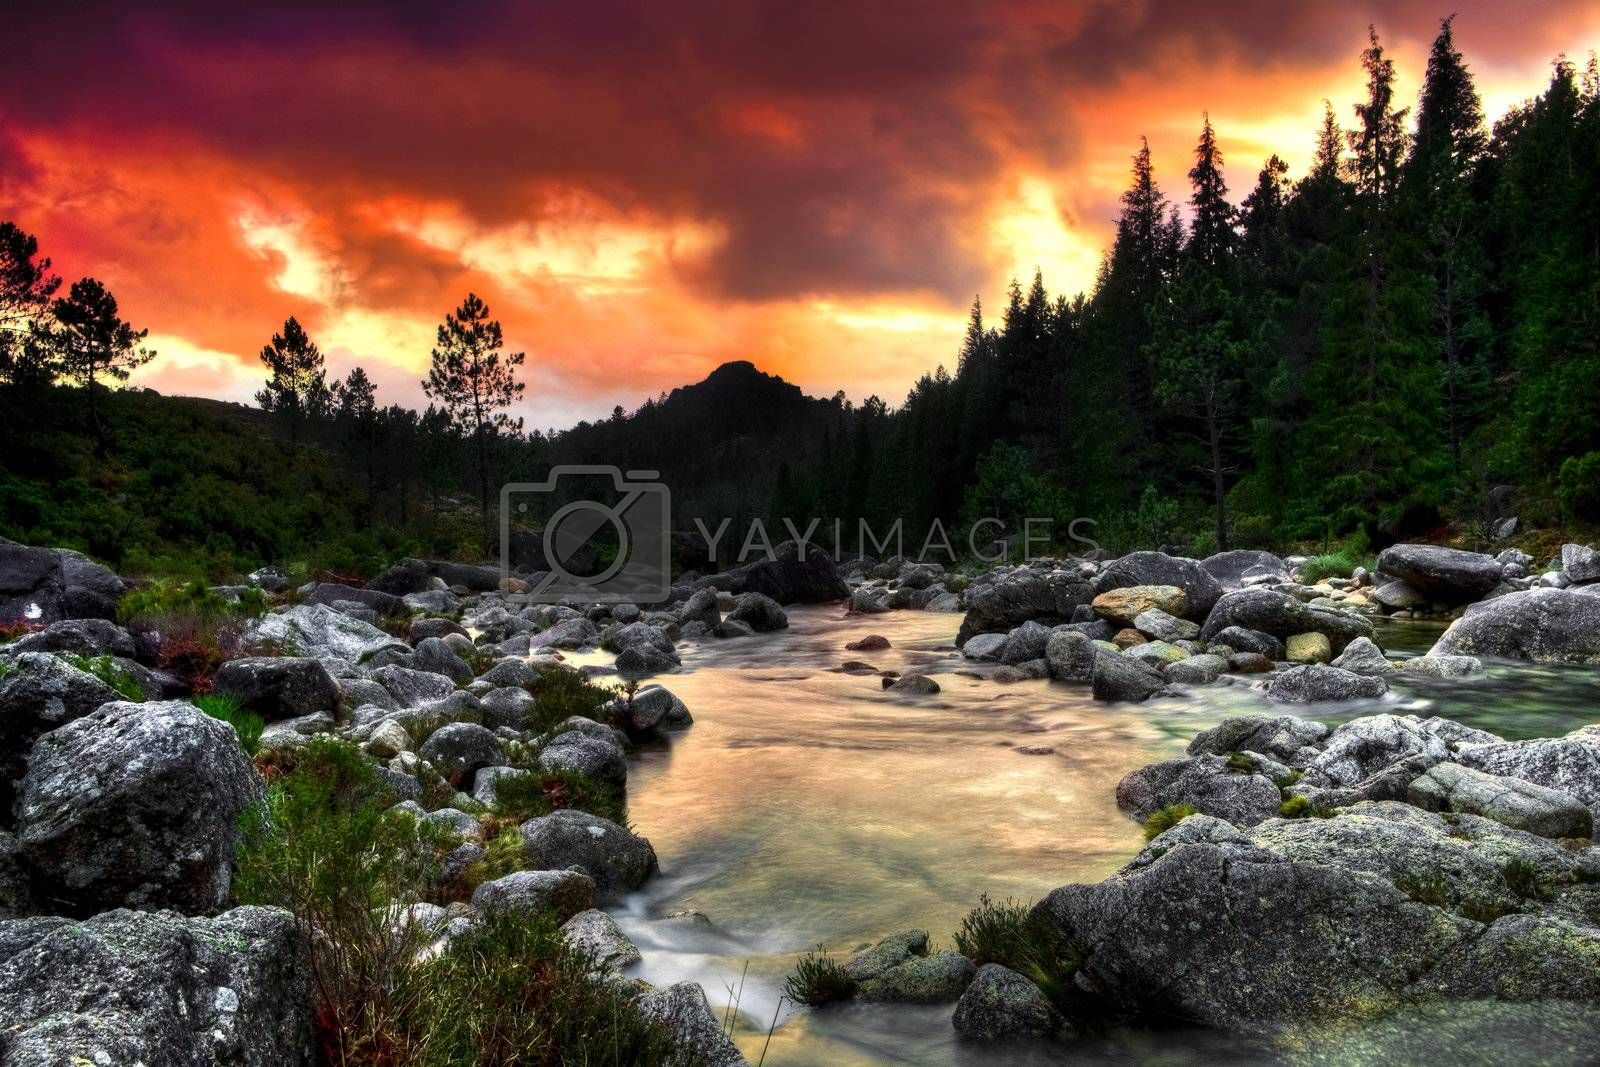 Royalty free image of Mountain River  by Iko